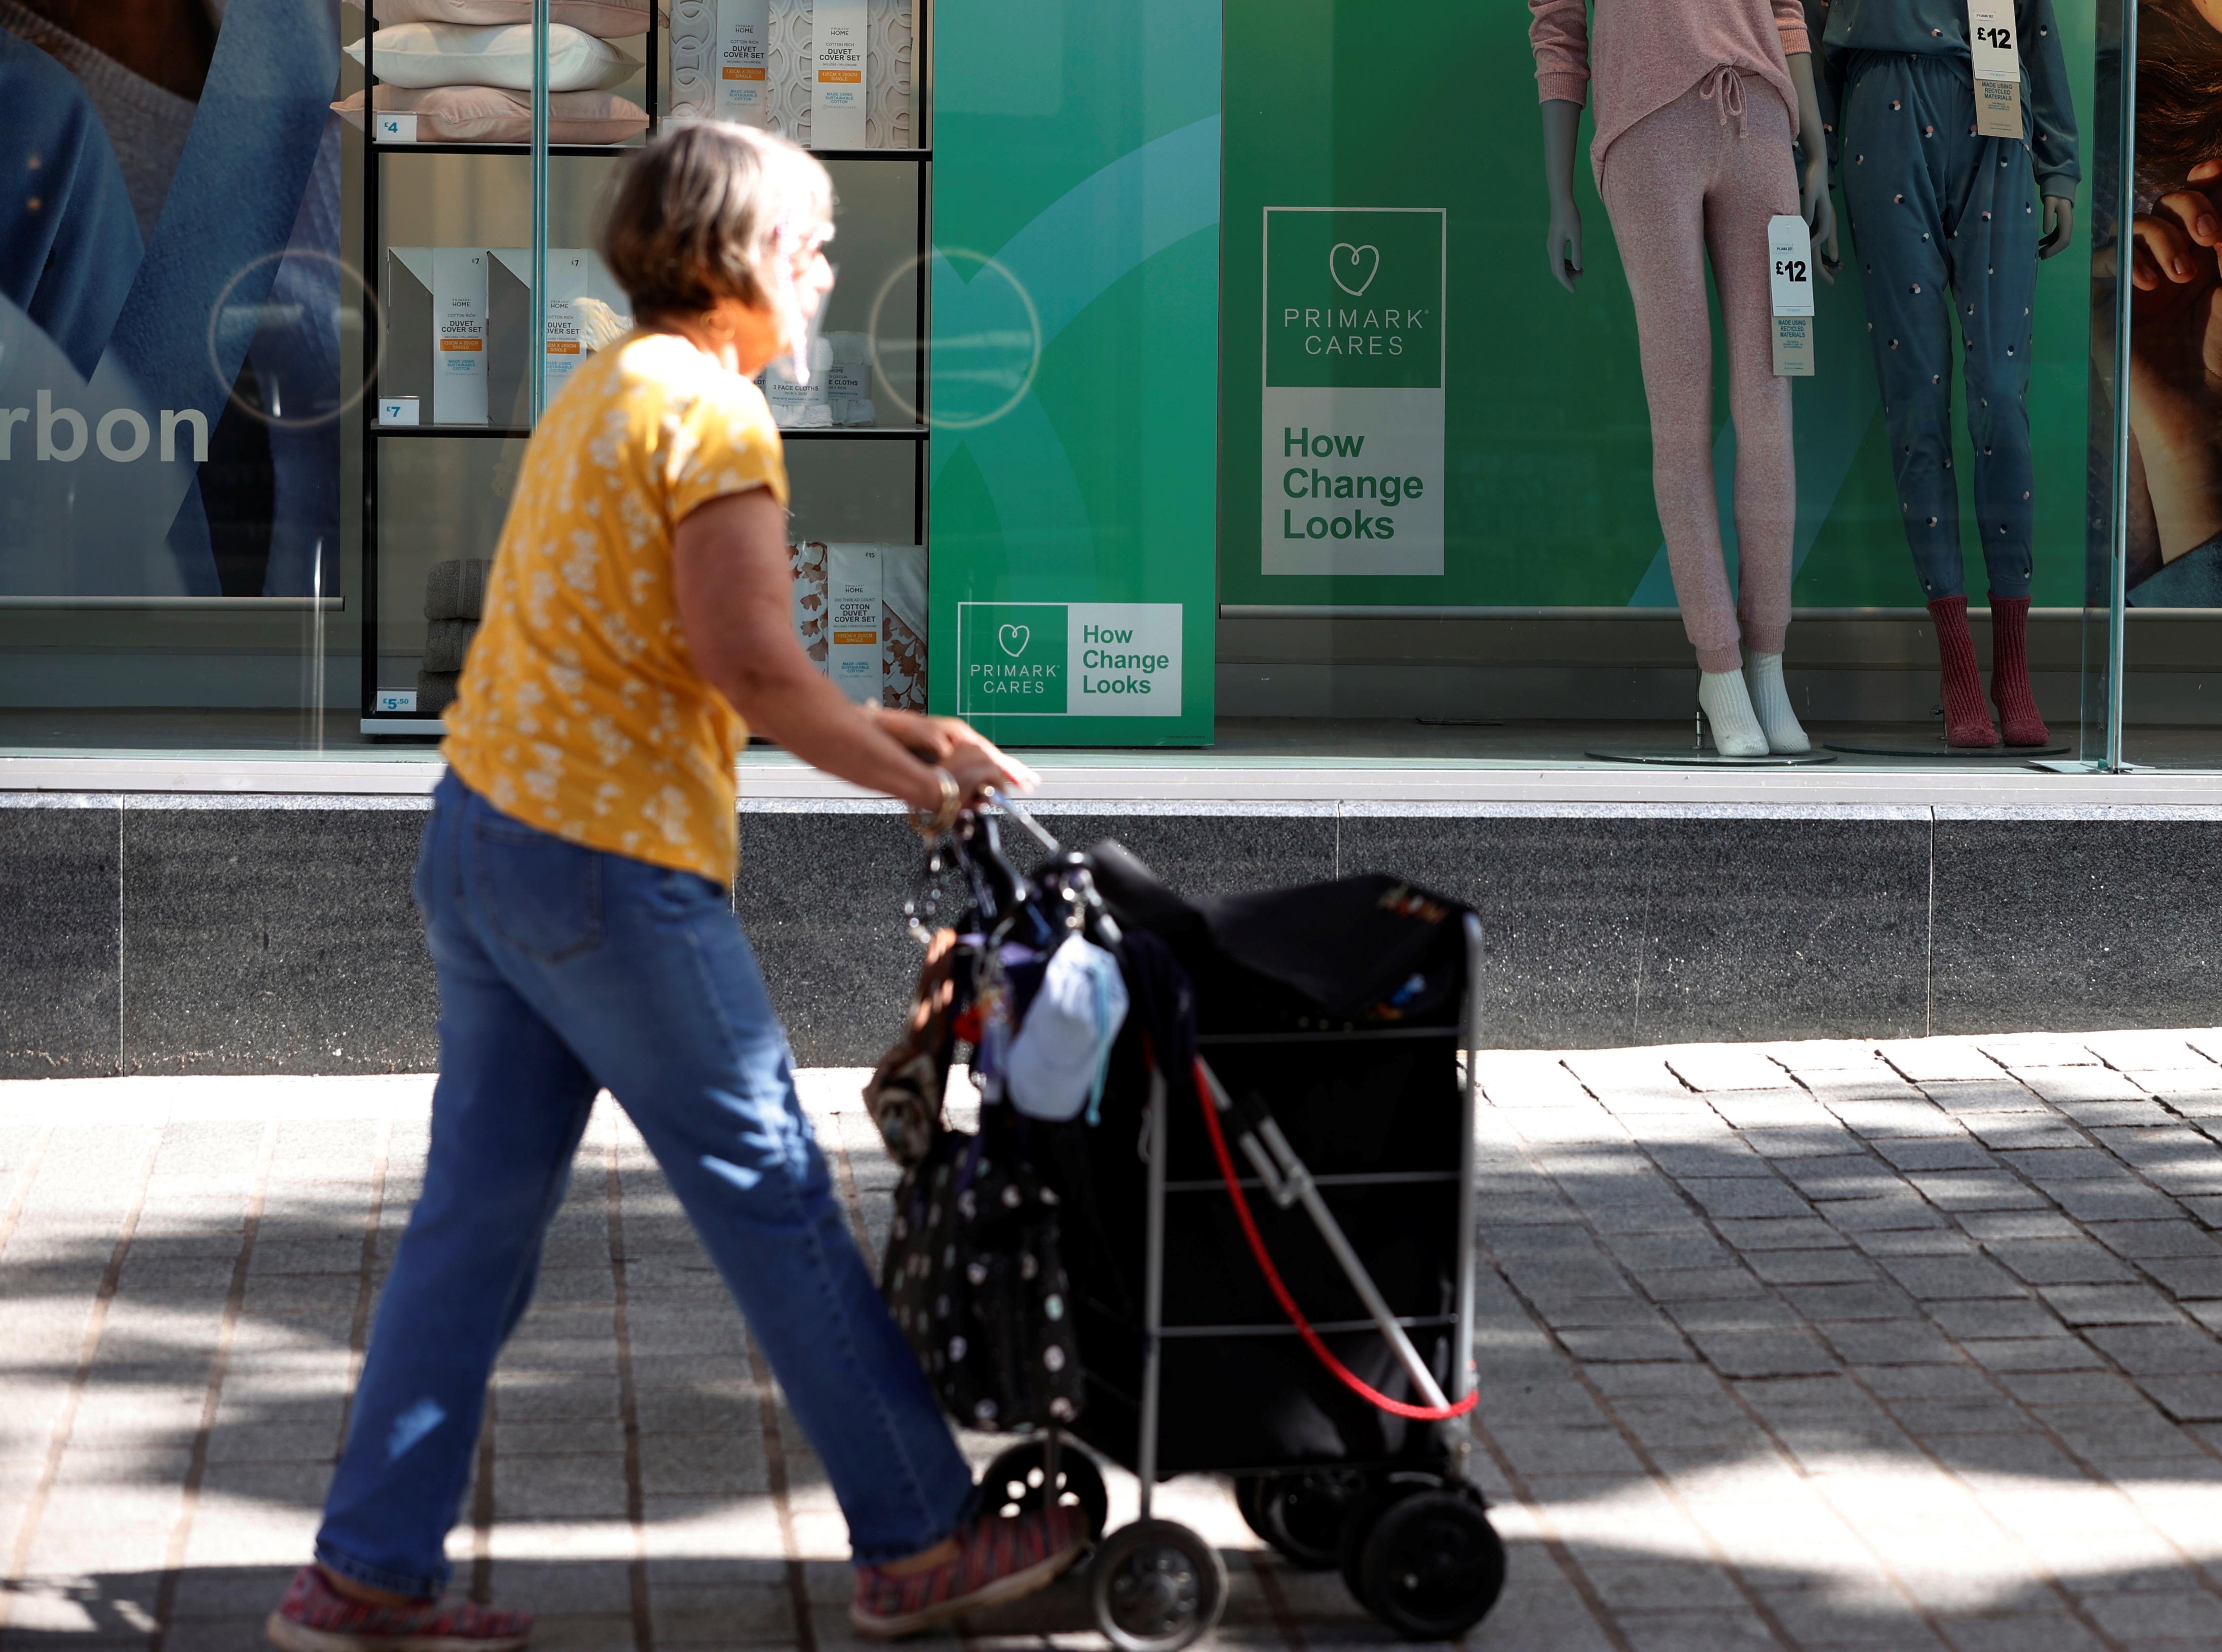 A woman walks past a window display showing new environmentally themed posters at a Primark store in Liverpool, Britain, September 15, 2021. REUTERS/Phil Noble